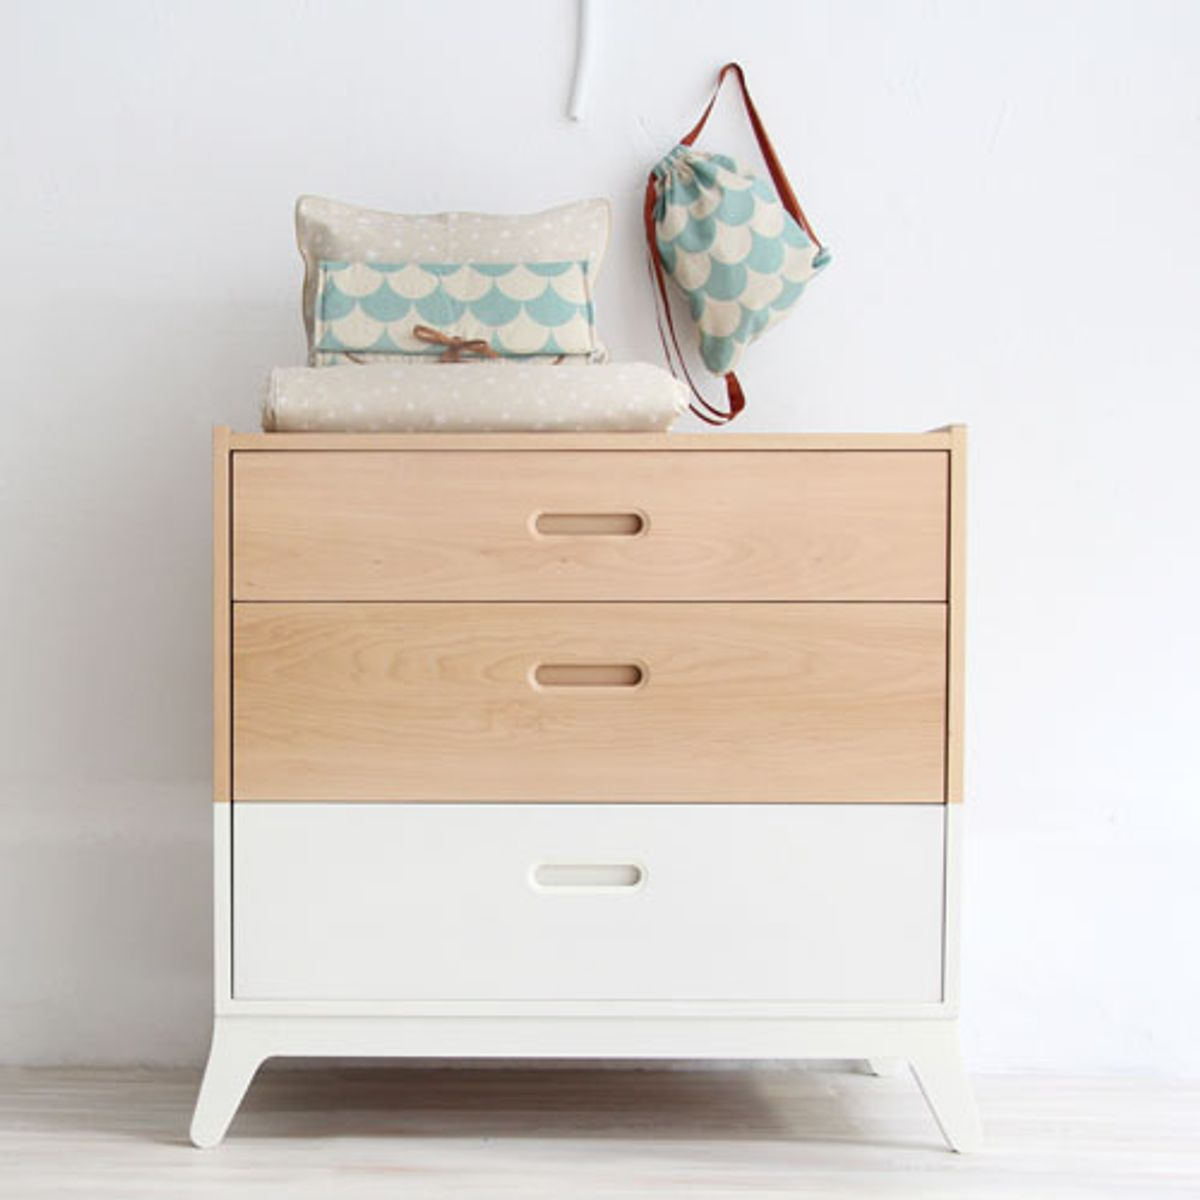 commode nobodinoz en bois naturel et blanc 3 tiroirs horizon decoclico. Black Bedroom Furniture Sets. Home Design Ideas